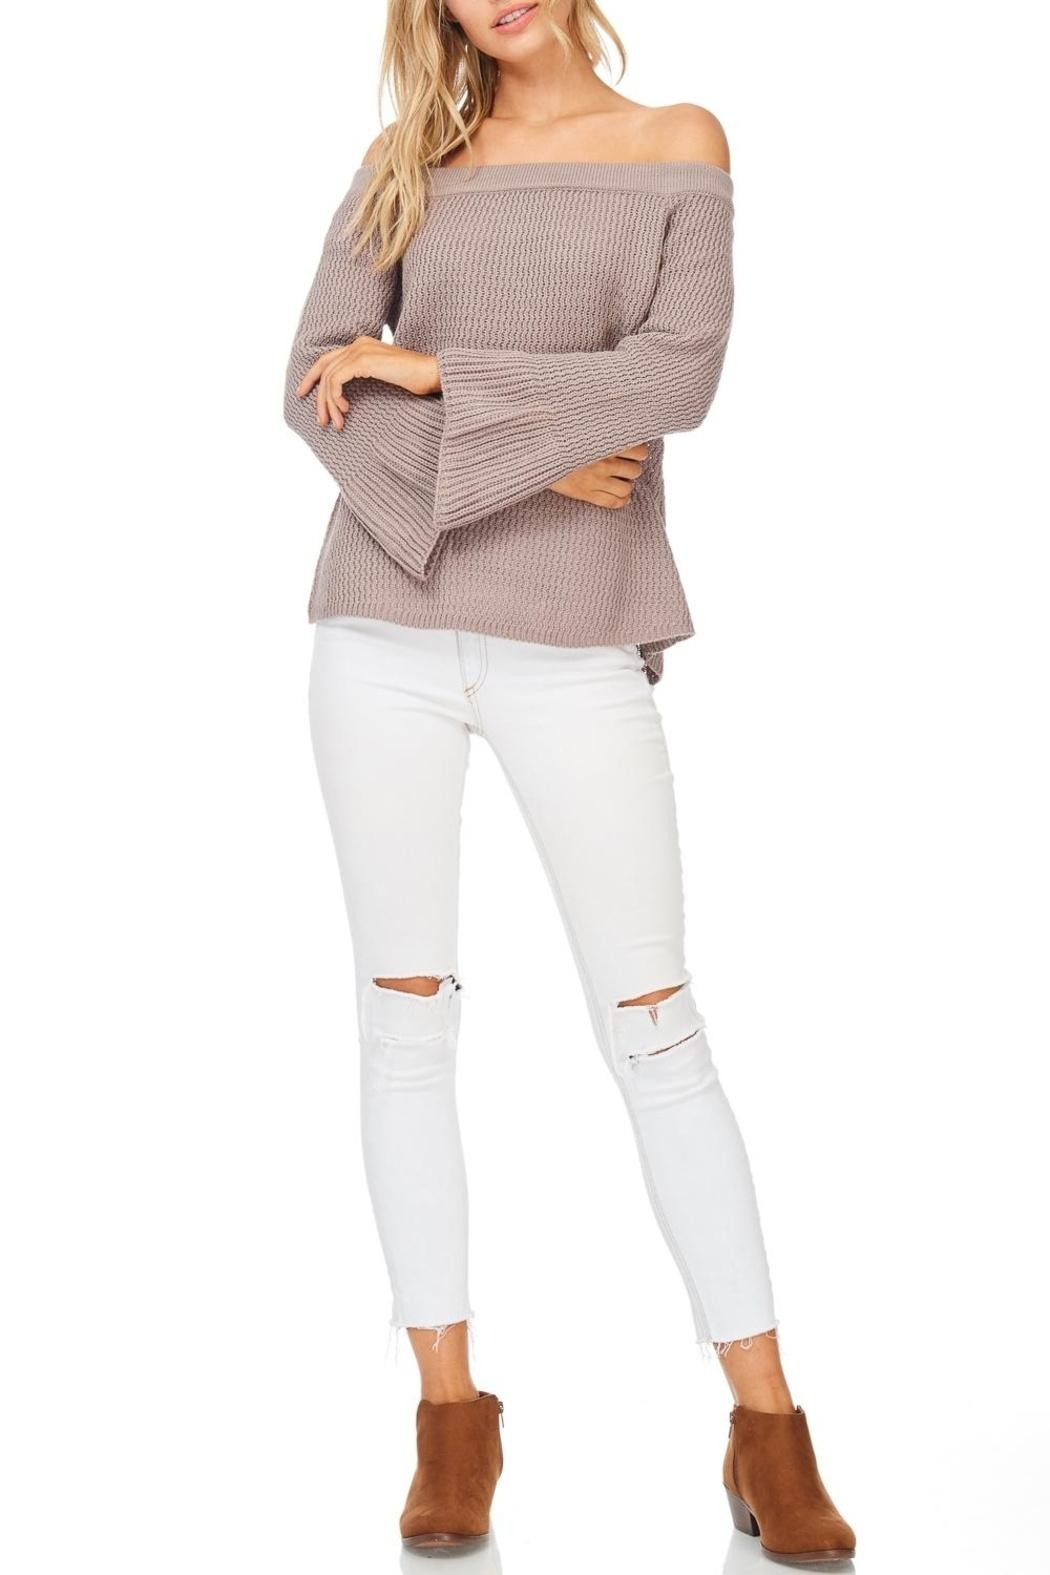 LoveRiche Mocha Sweater - Front Cropped Image